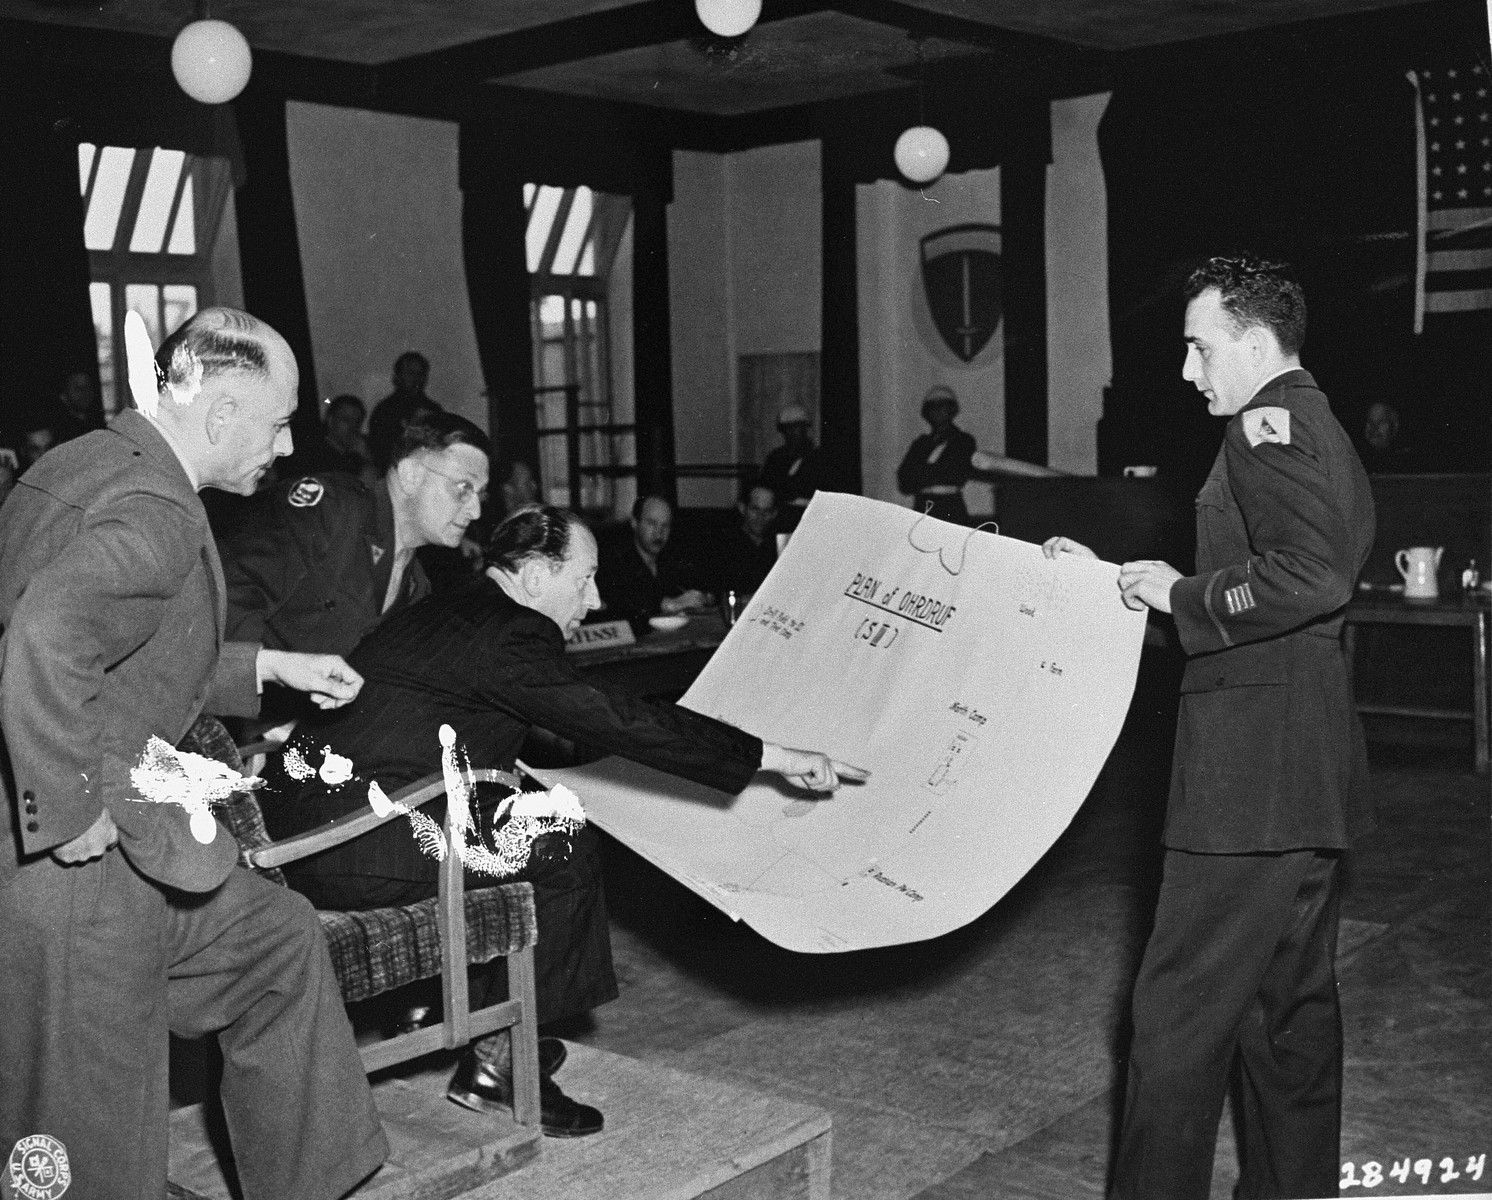 Dr. Viktor Abend, a Polish civilian witness for the prosecution at the trial of former camp personnel and prisoners from Buchenwald, points to a diagram of Ohrdruf, a sub-camp of Buchenwald.    Court personnel pictured from left to right are Dr. Aheimer, a defense attorney; Rudolph Nathanson, an interpreter; Dr. Abend; and Sol Surowitz, an attorney for the prosecution.